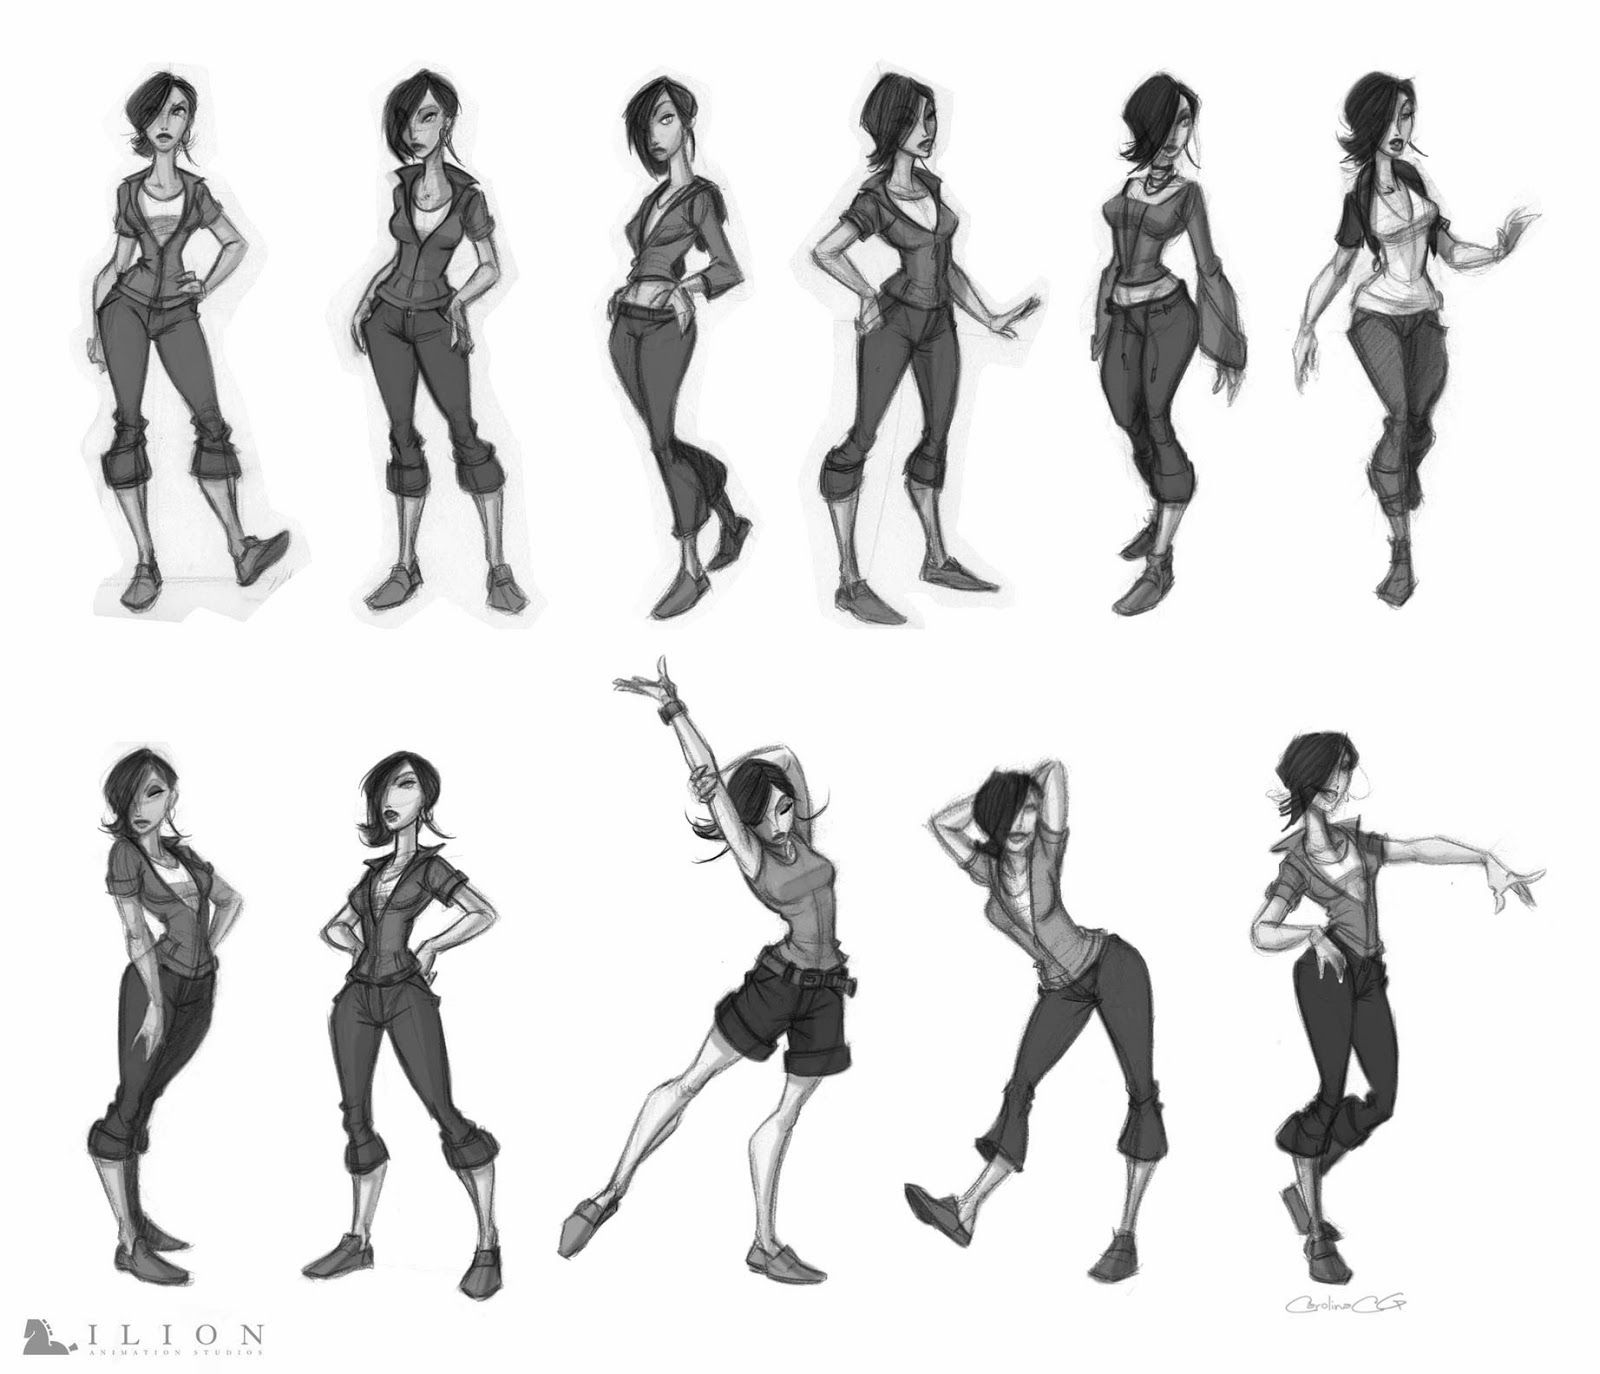 Arena Posing Part I Character Poses Poses Character Design Girl,Very Easy Mehndi Designs For Beginners Step By Step